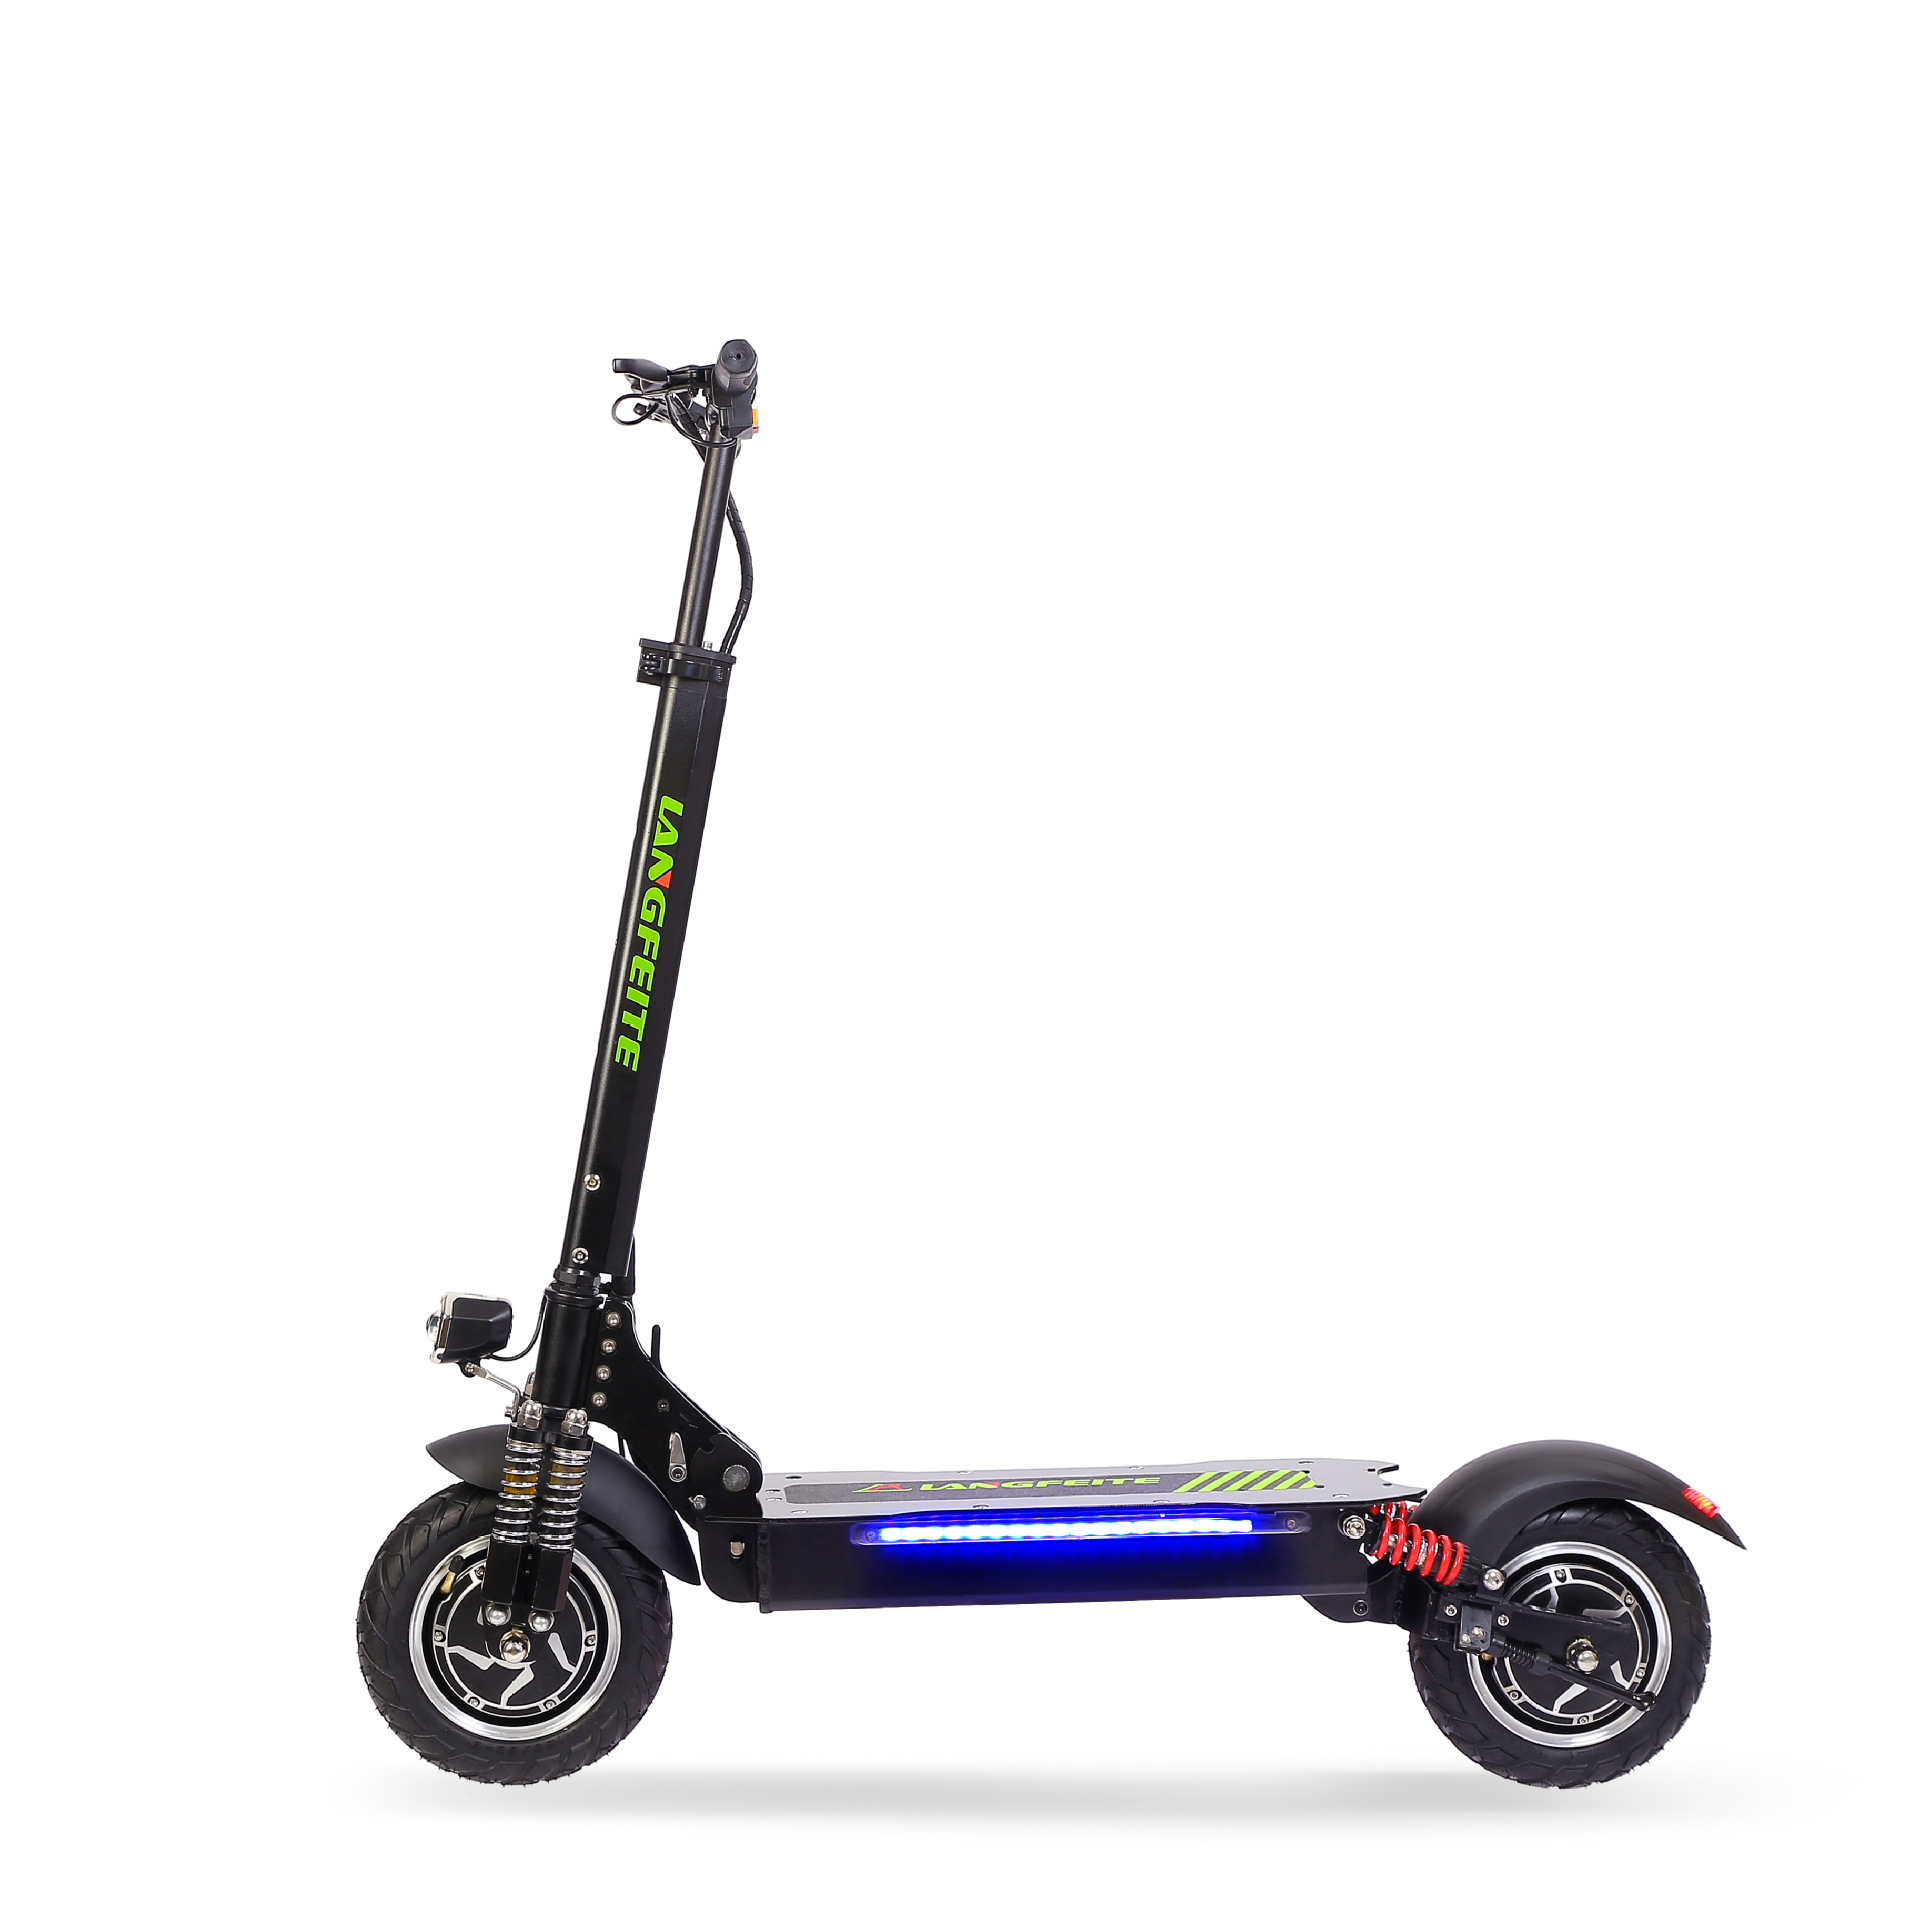 LANGFEITE L8 20.8Ah 48V 800W*2 Double Motor Folding Electric Scooter Color Display DC Brushless Motor 45km/h Top Speed 55km Range EU Plug